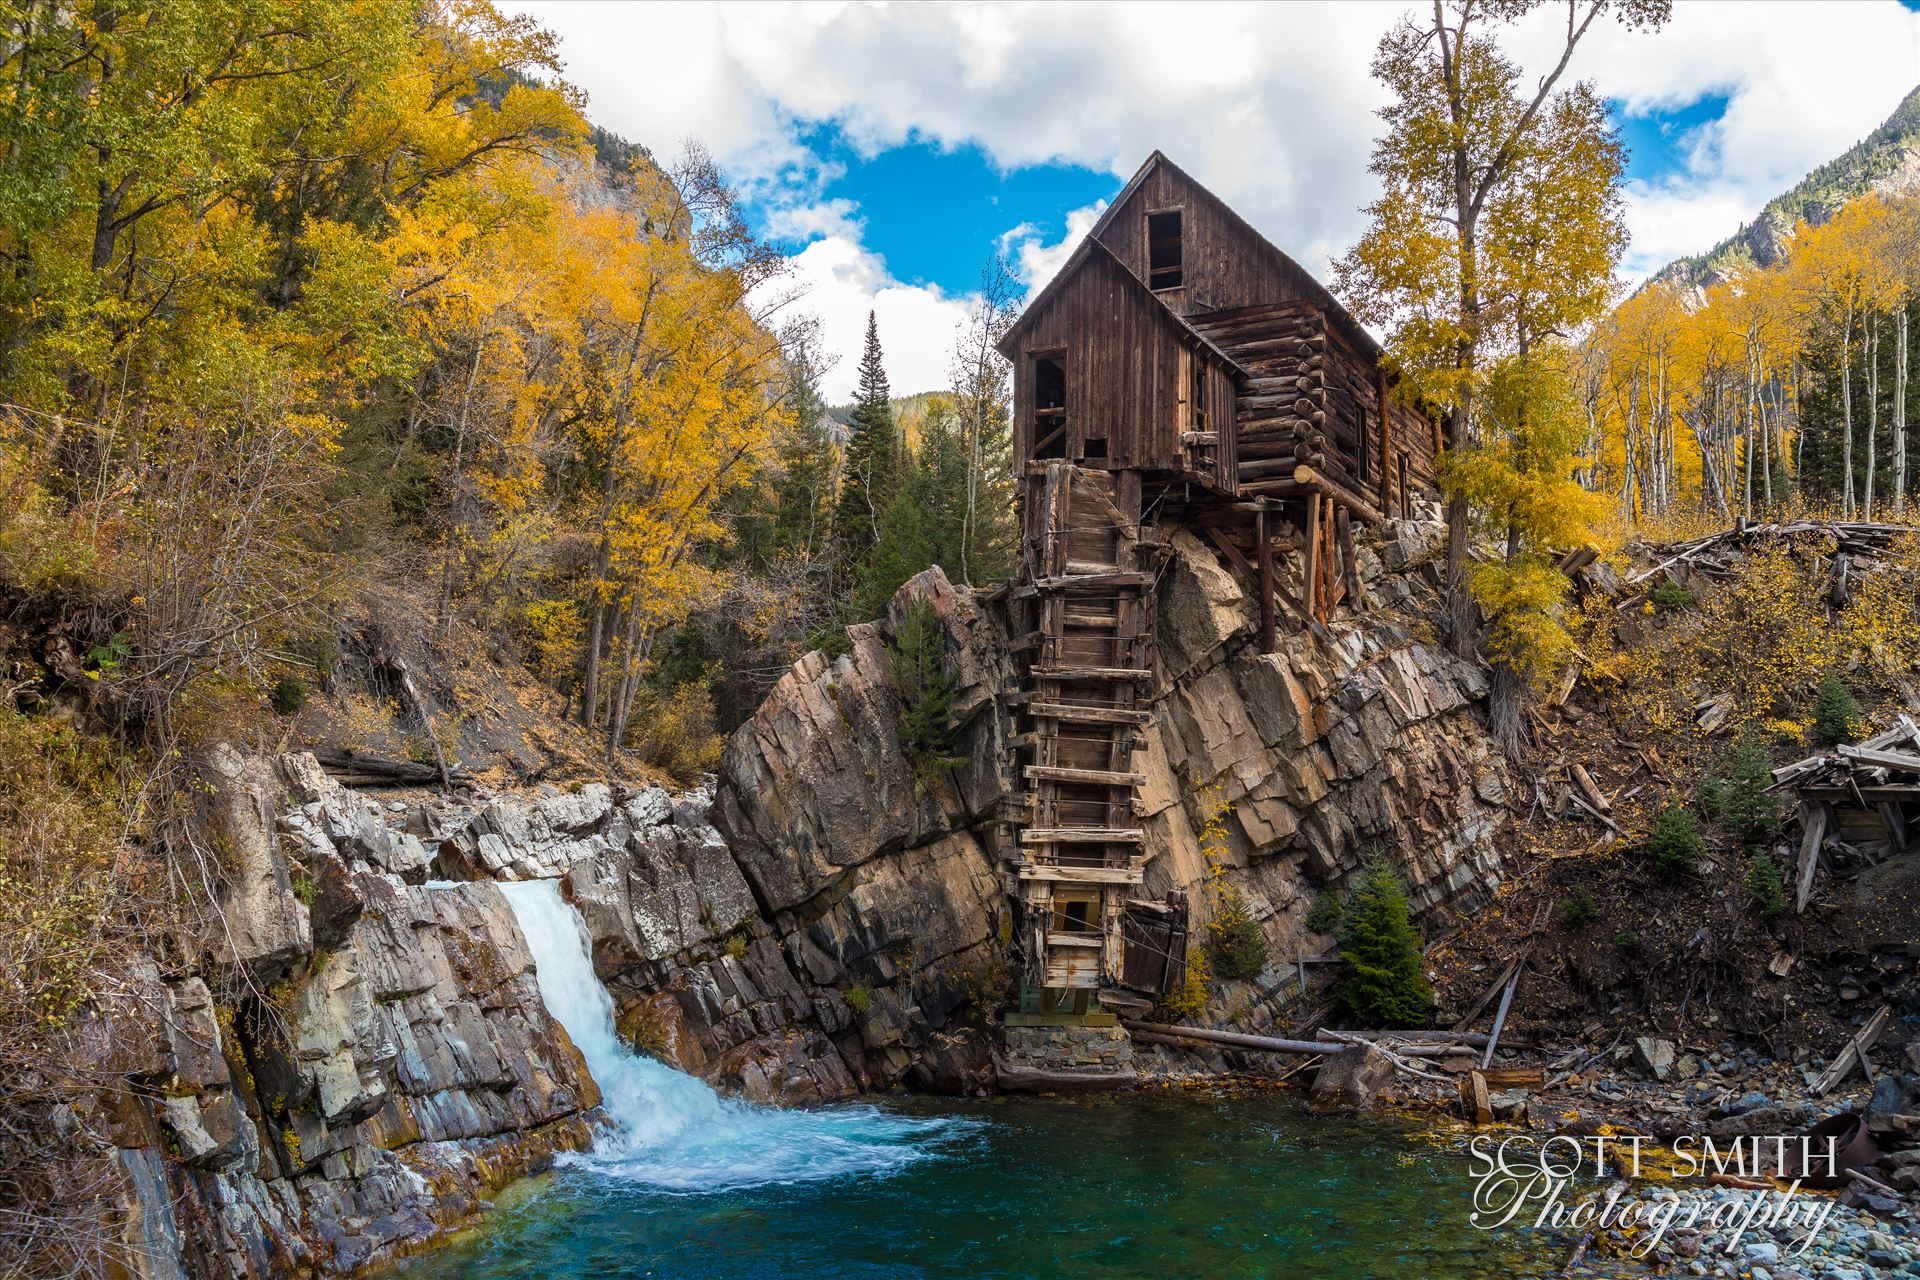 Crystal Mill, Colorado 03 - The Crystal Mill, or the Old Mill is an 1892 wooden powerhouse located on an outcrop above the Crystal River in Crystal, Colorado by D Scott Smith